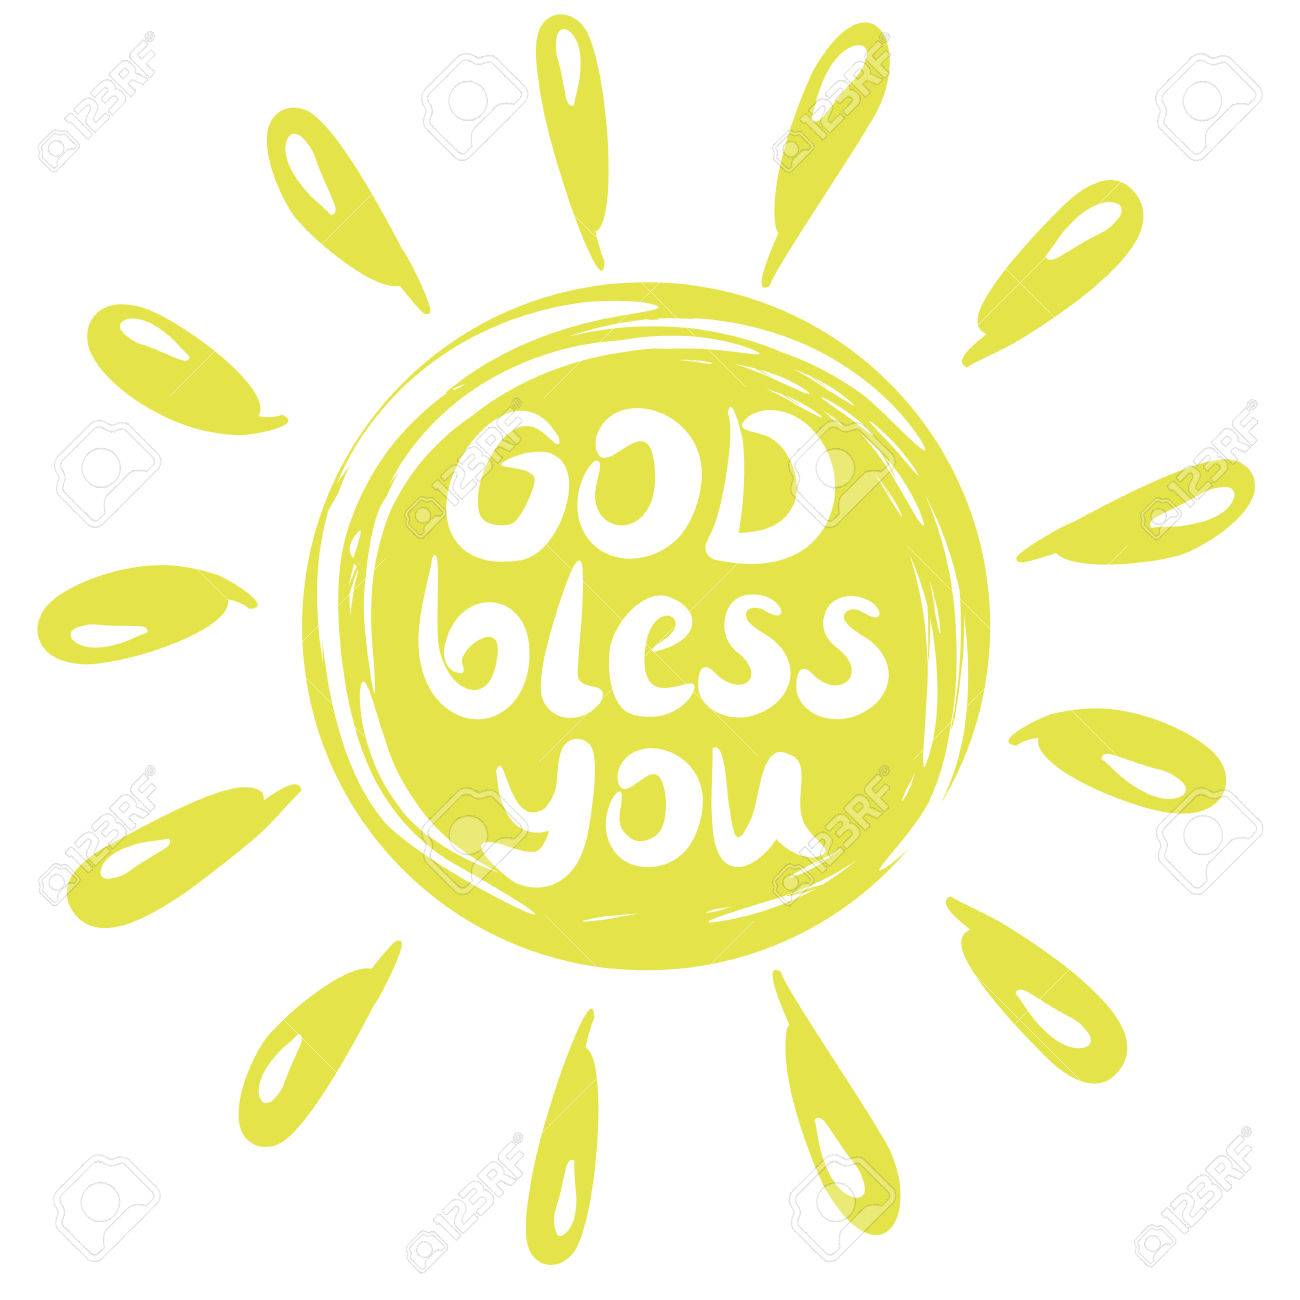 Hand lettering God Bless you with a yellow circle with rays.